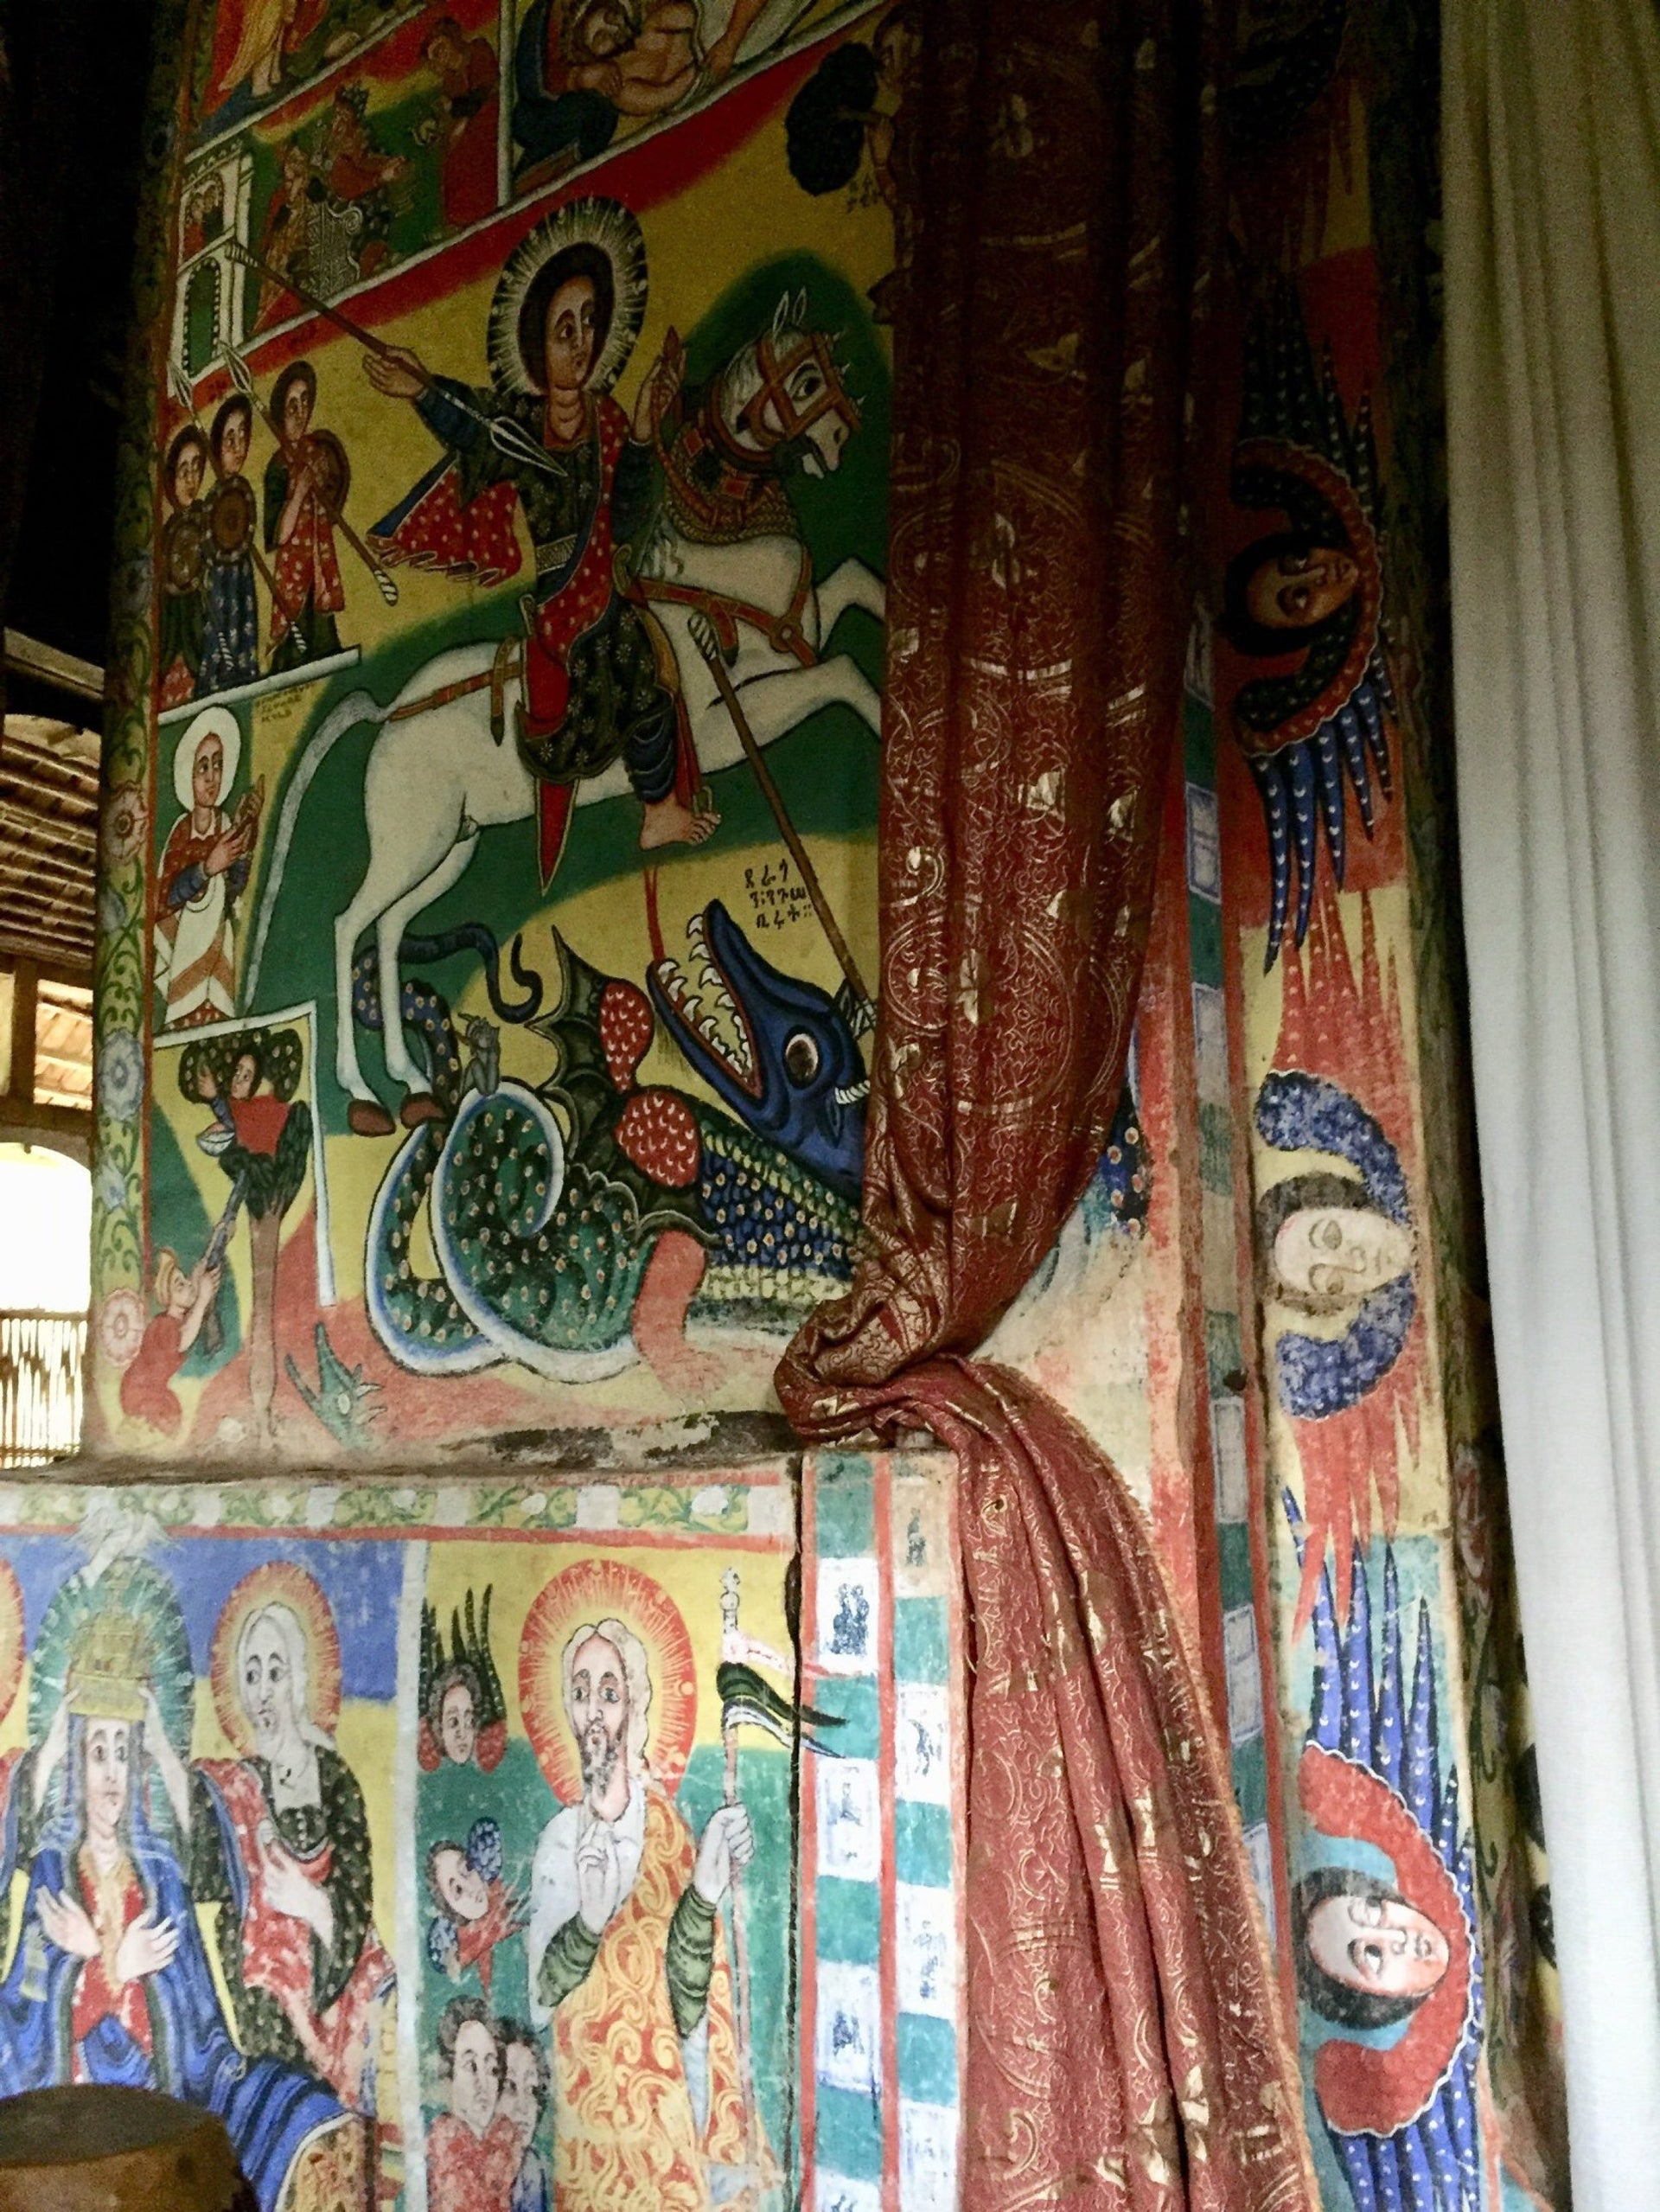 This Oct. 6, 2017 photo shows religious art at the interior of a circular, thatch-roofed church on an island in Lake Tana. The third-largest lake in Africa has long been home to Christian convents and monasteries.